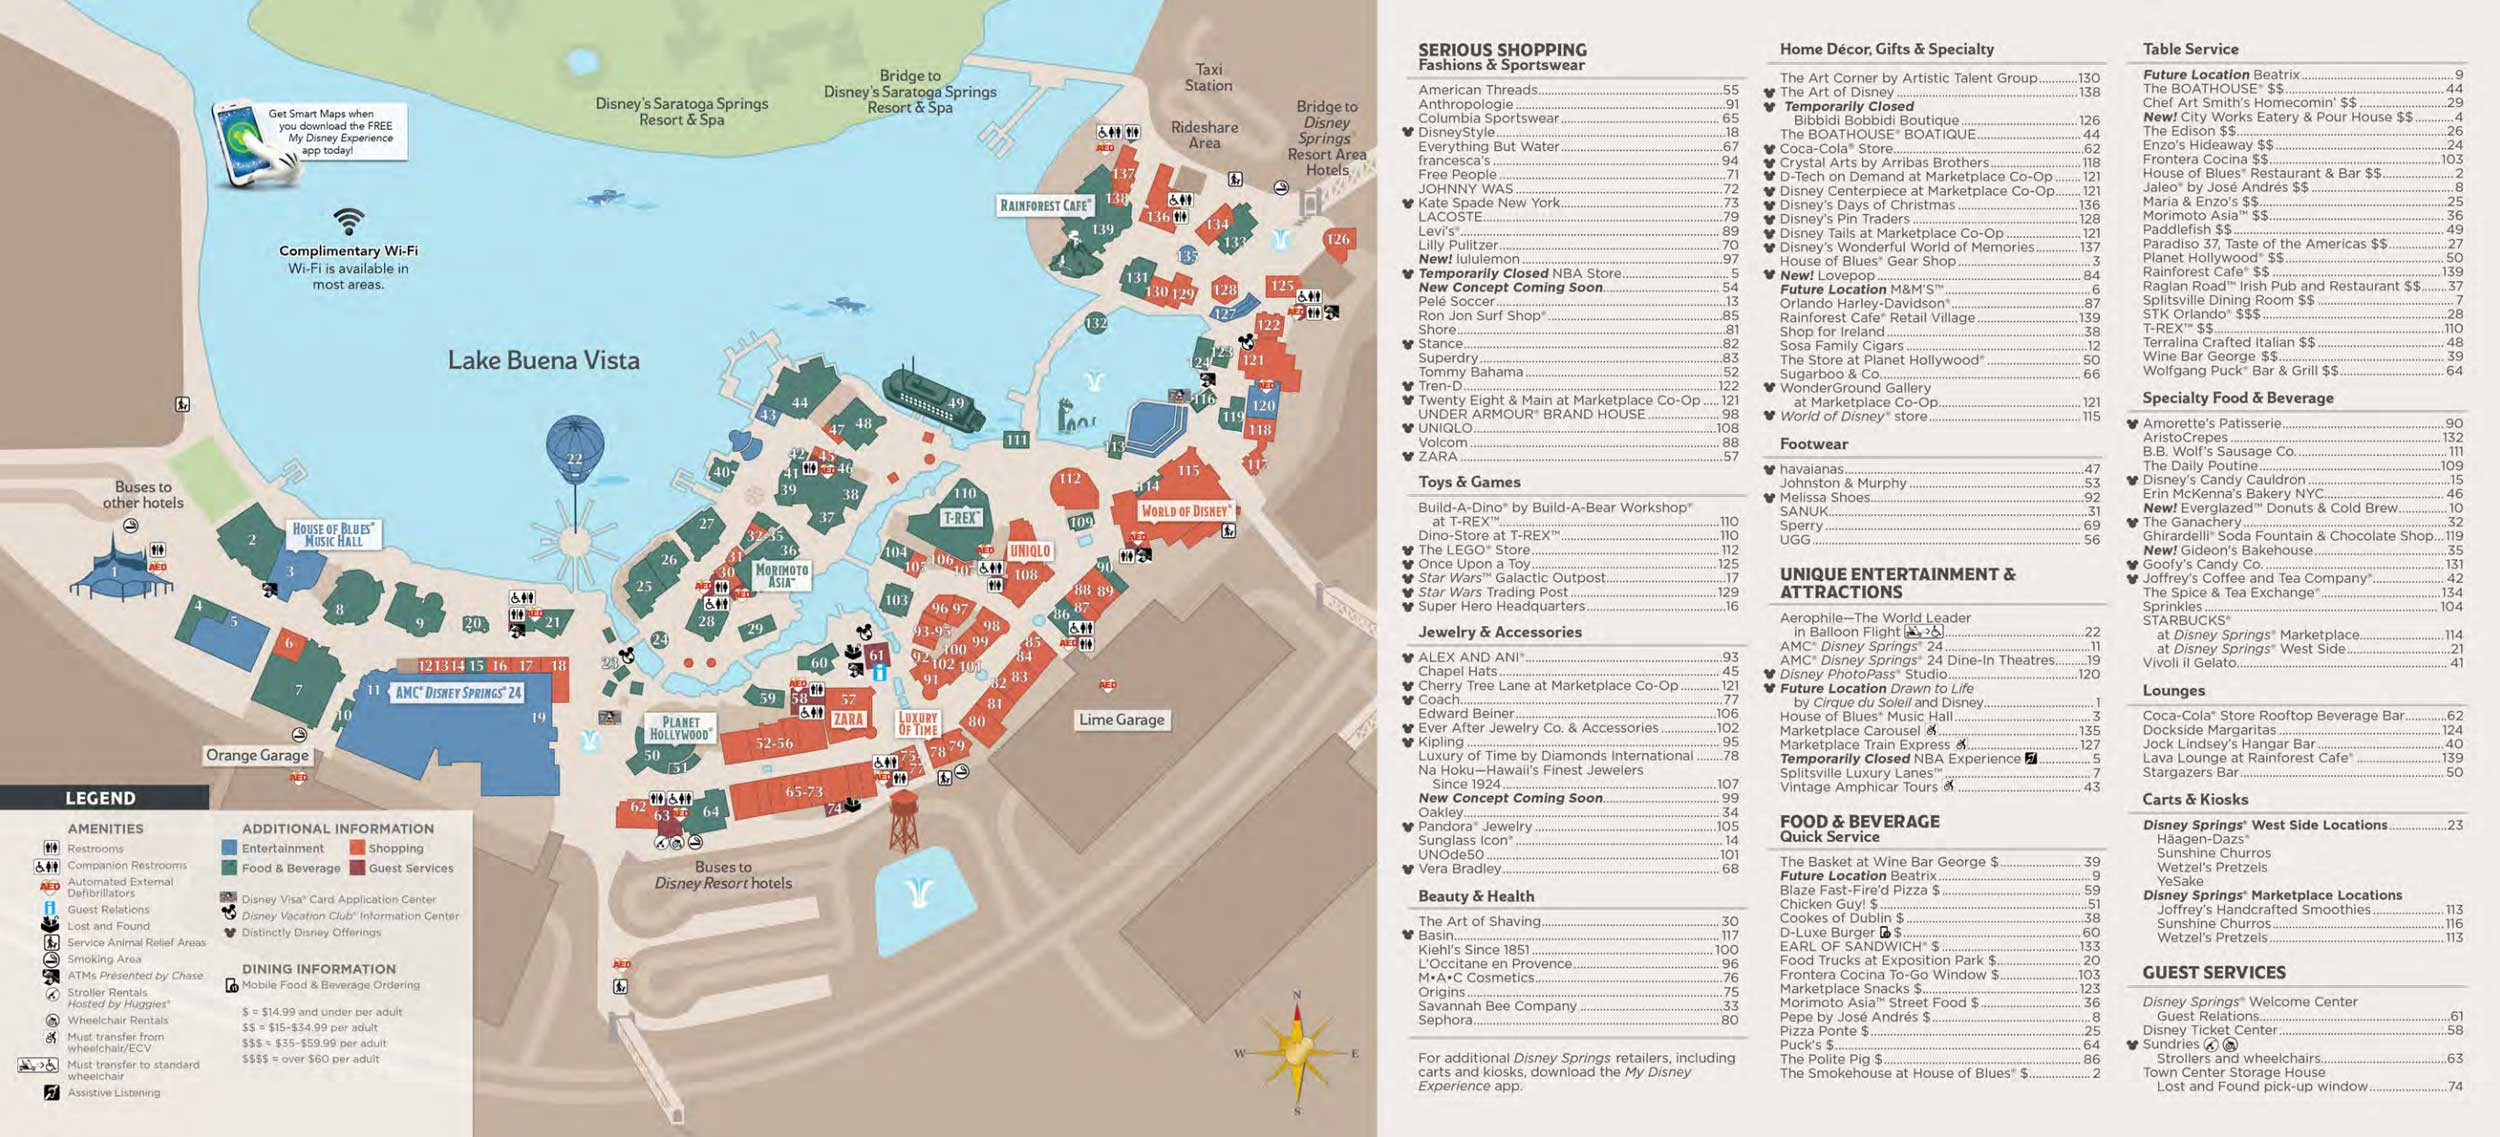 Disney Springs Map - Walt Disney World